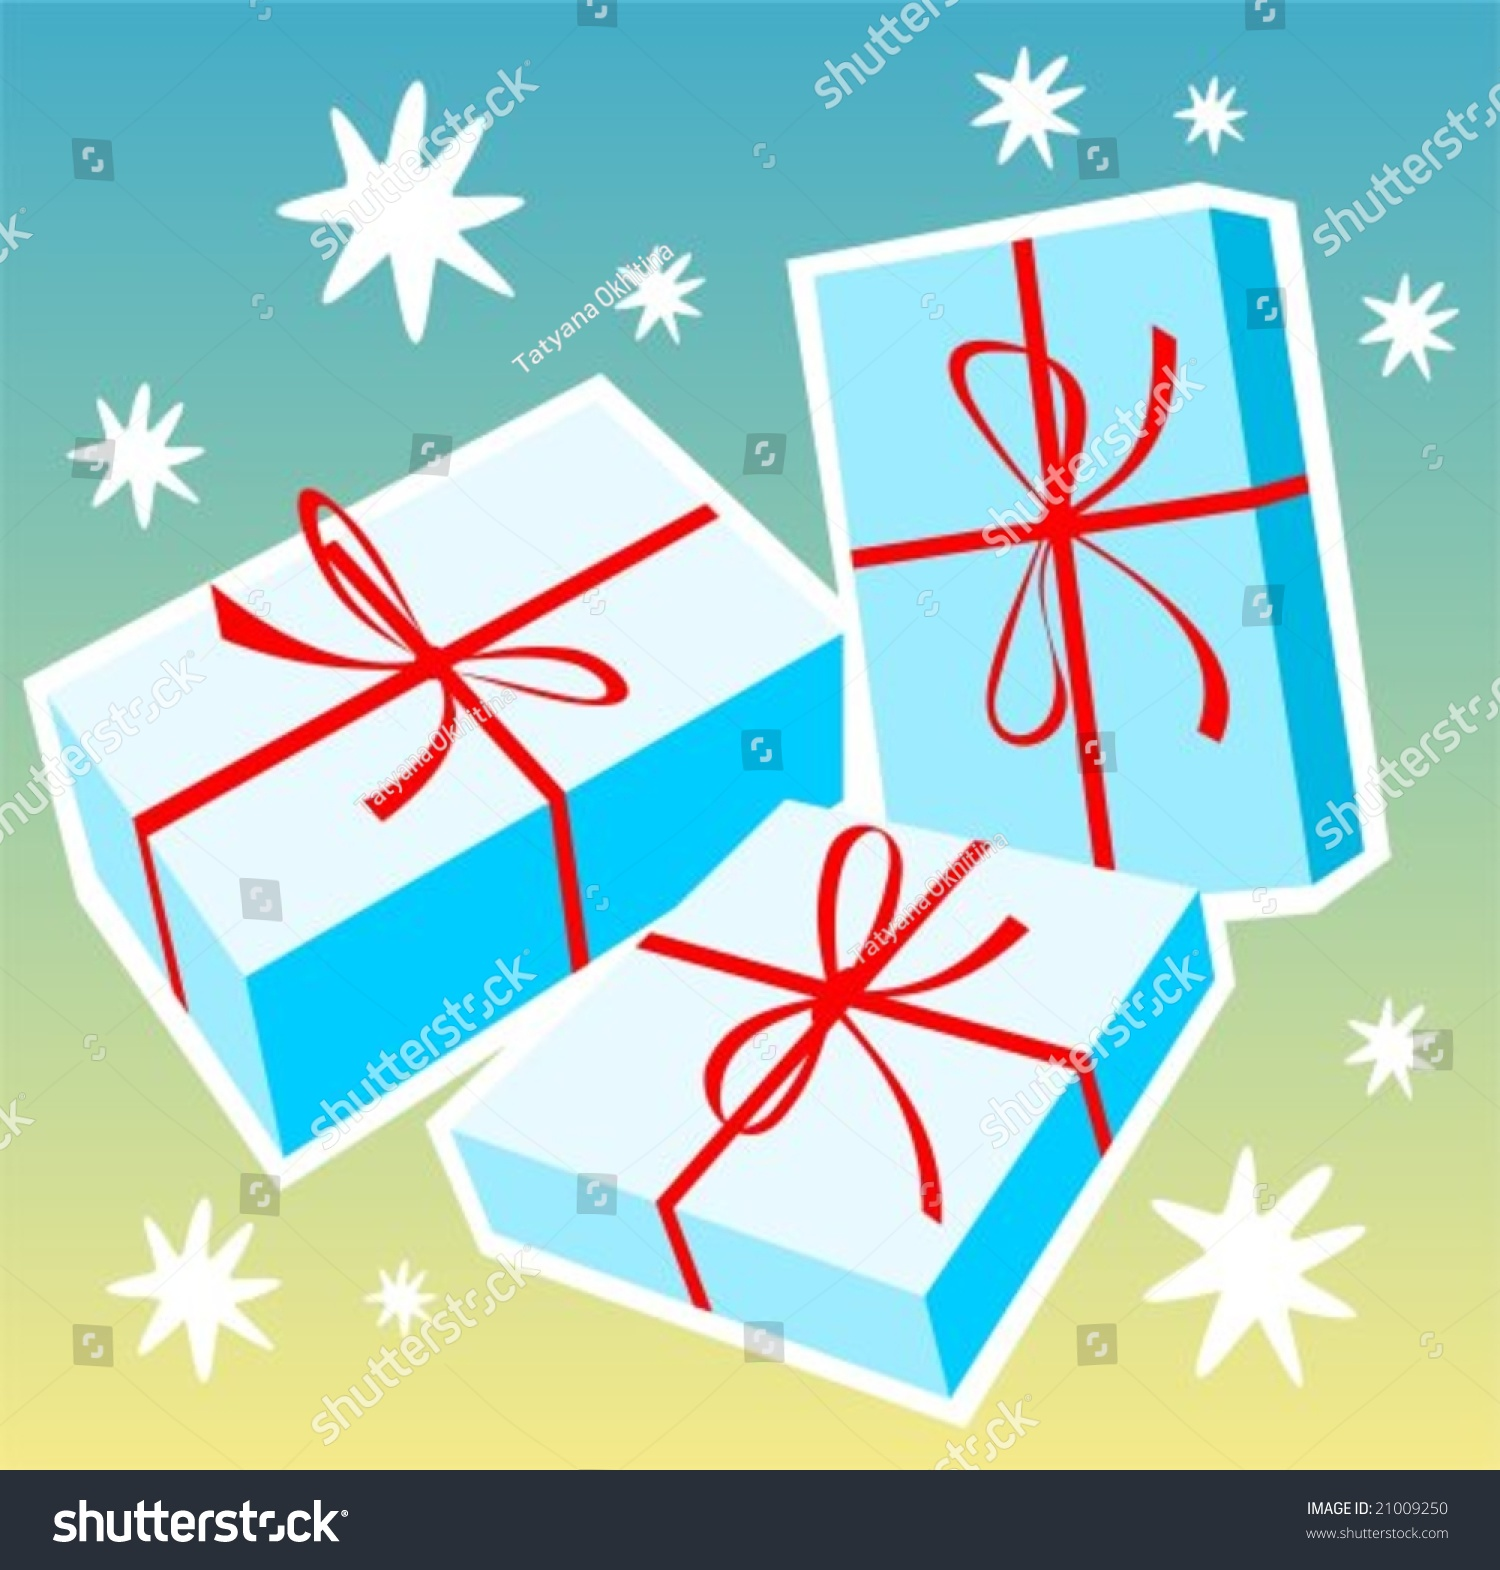 Cartoon Three Gift Boxes On Blue Stock Vector 21009250 - Shutterstock